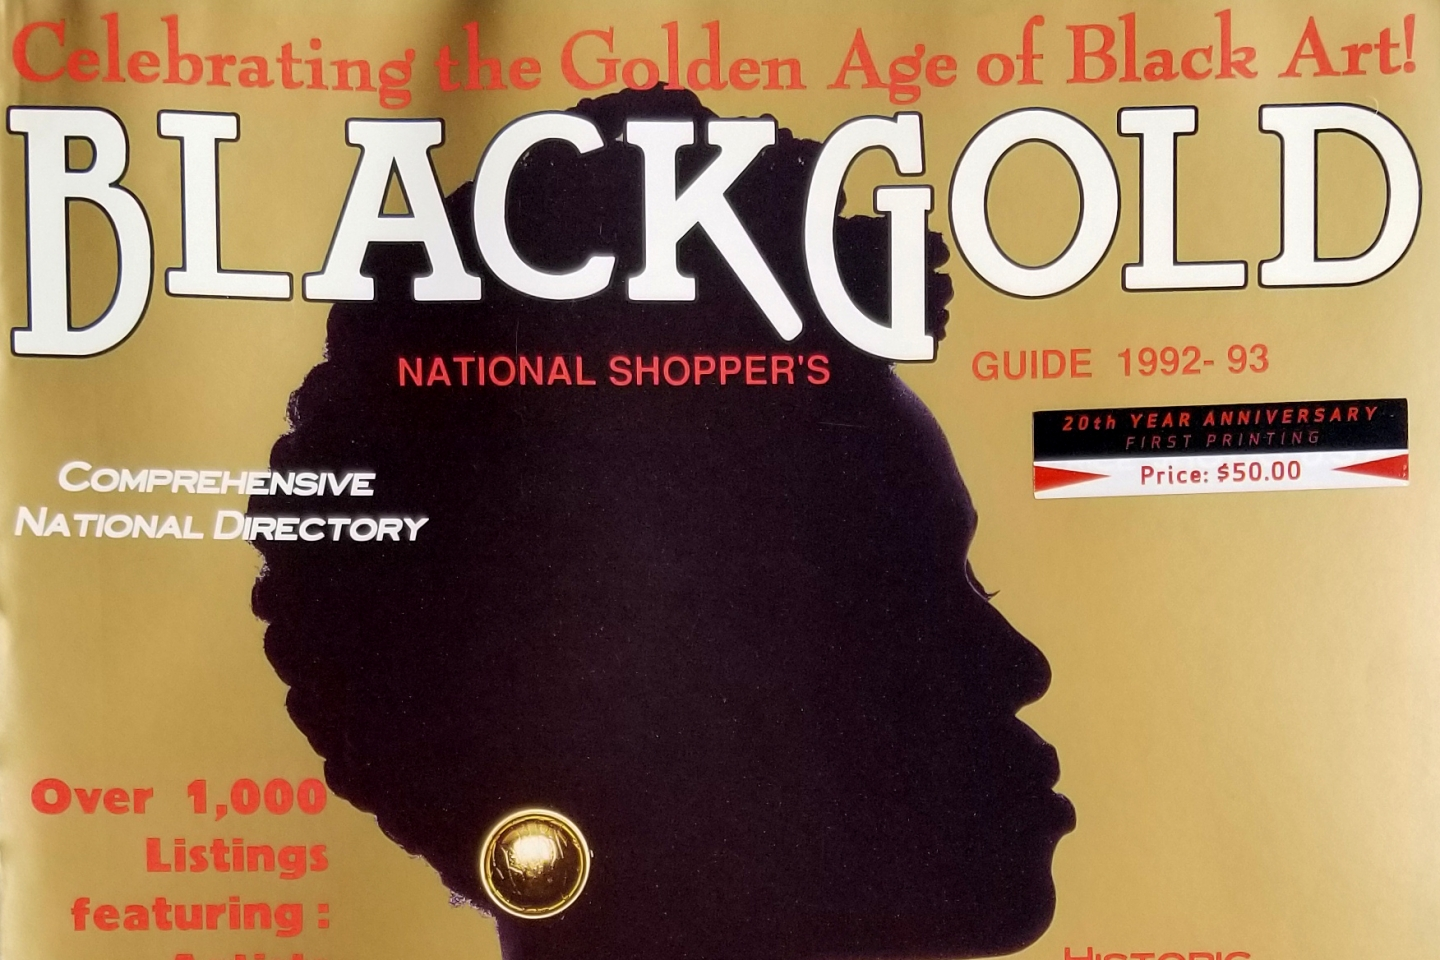 Rediscovering Black Gold: The Directory That Celebrated Golden Age Of Black Art